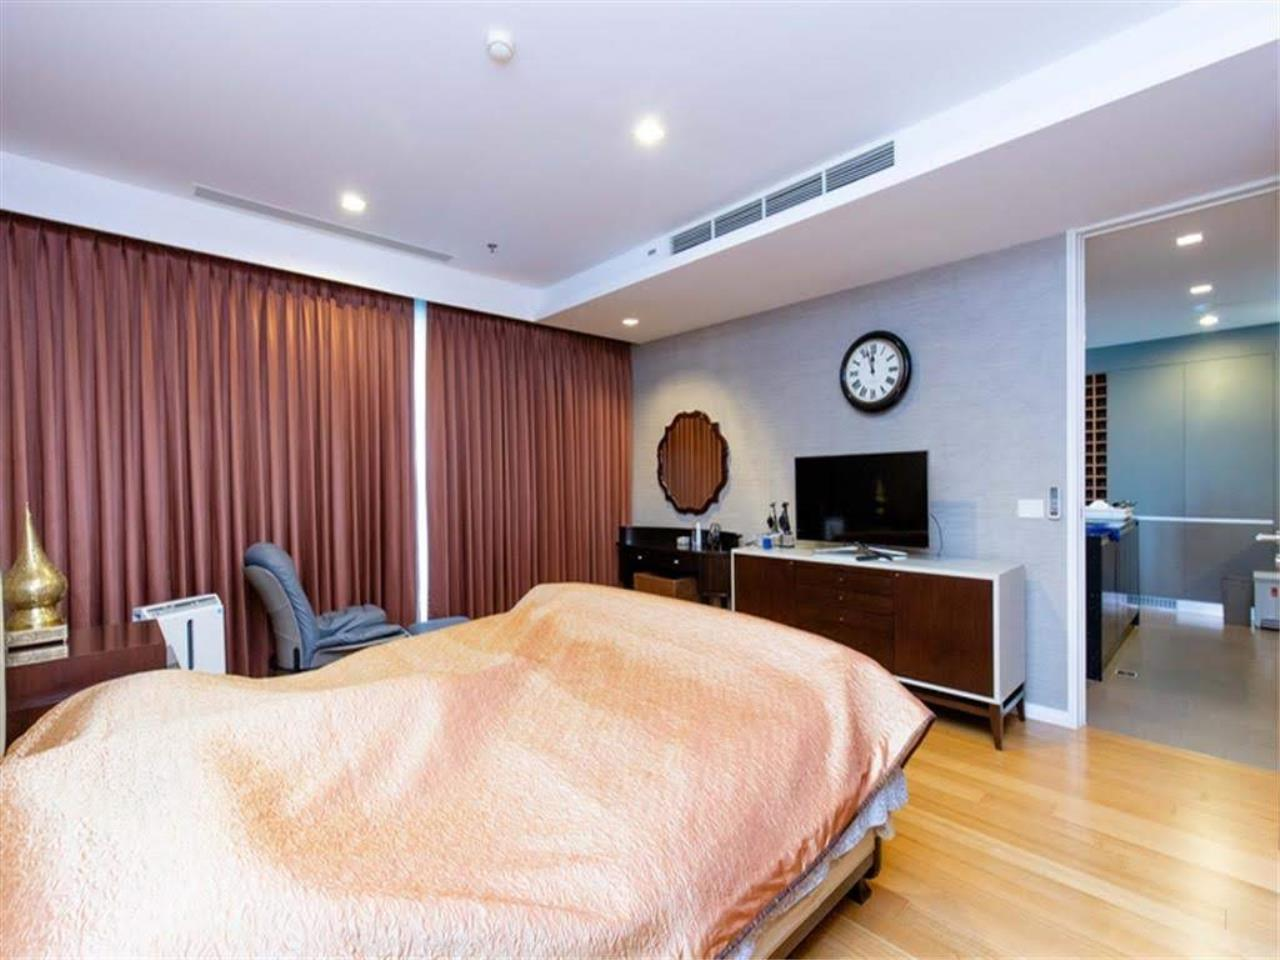 Bestbkkcondos Agency's The River - 233,8 sqm - For Sale : 52 000 000 THB - 3 Bedrooms 1